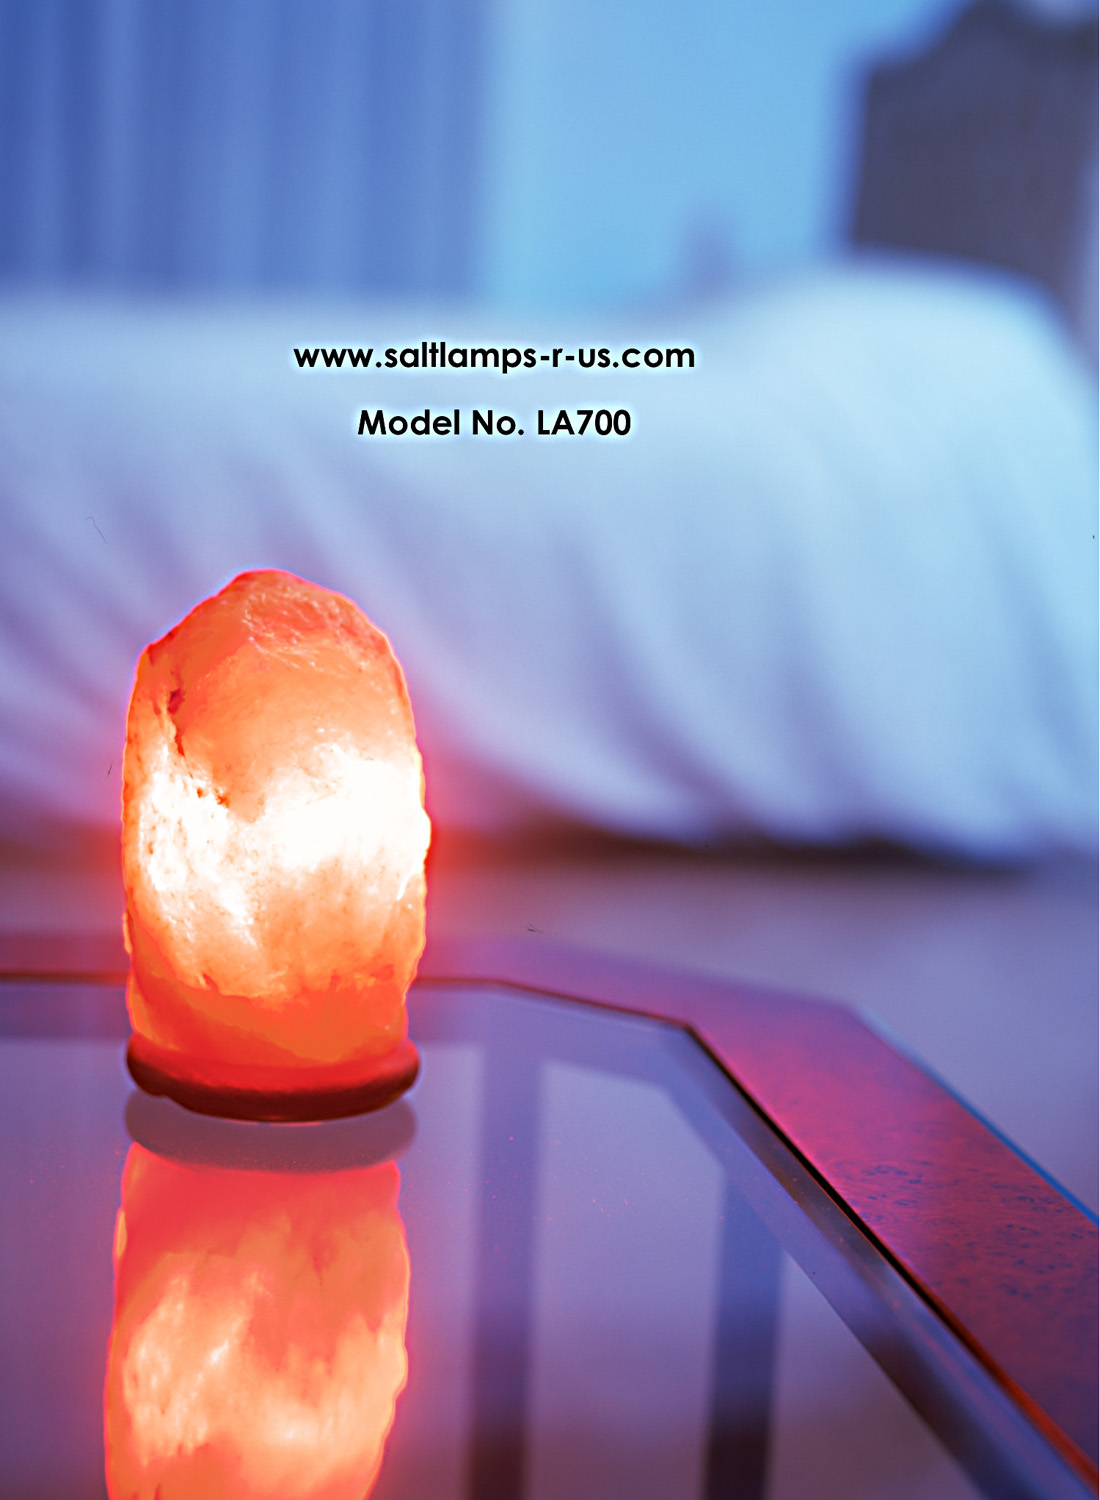 Salt Lamps Are Us : Starter Pack for New Business Special Offer 13 Best Selling Items Saltlamps-R-Us